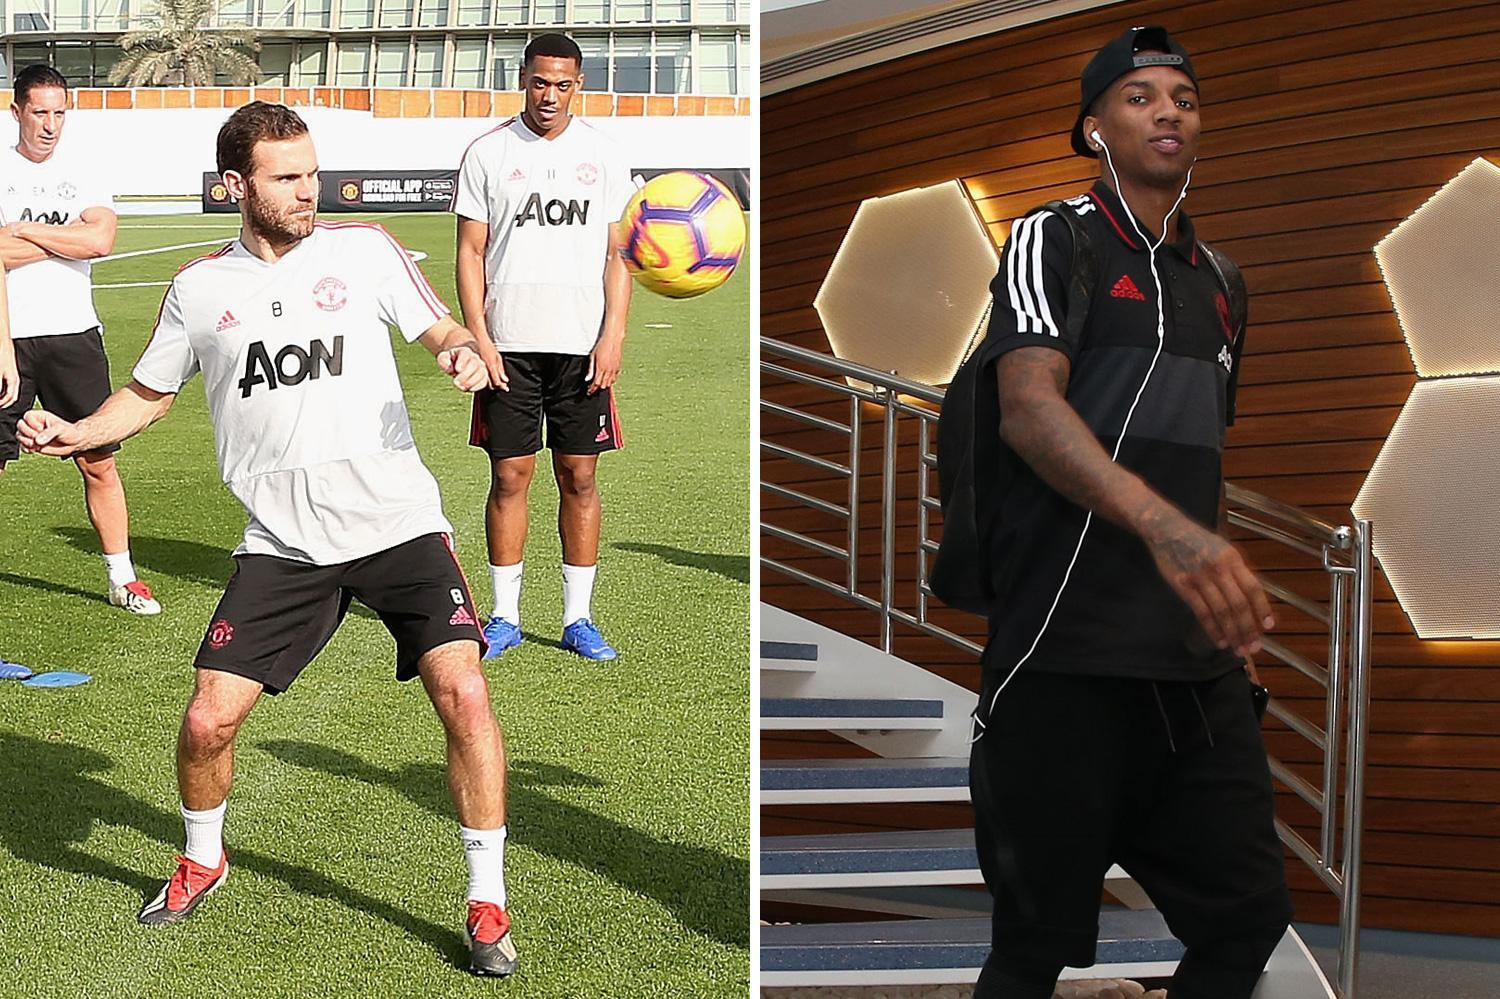 Man Utd in talks with Juan Mata and Ashley Young over contract extensions